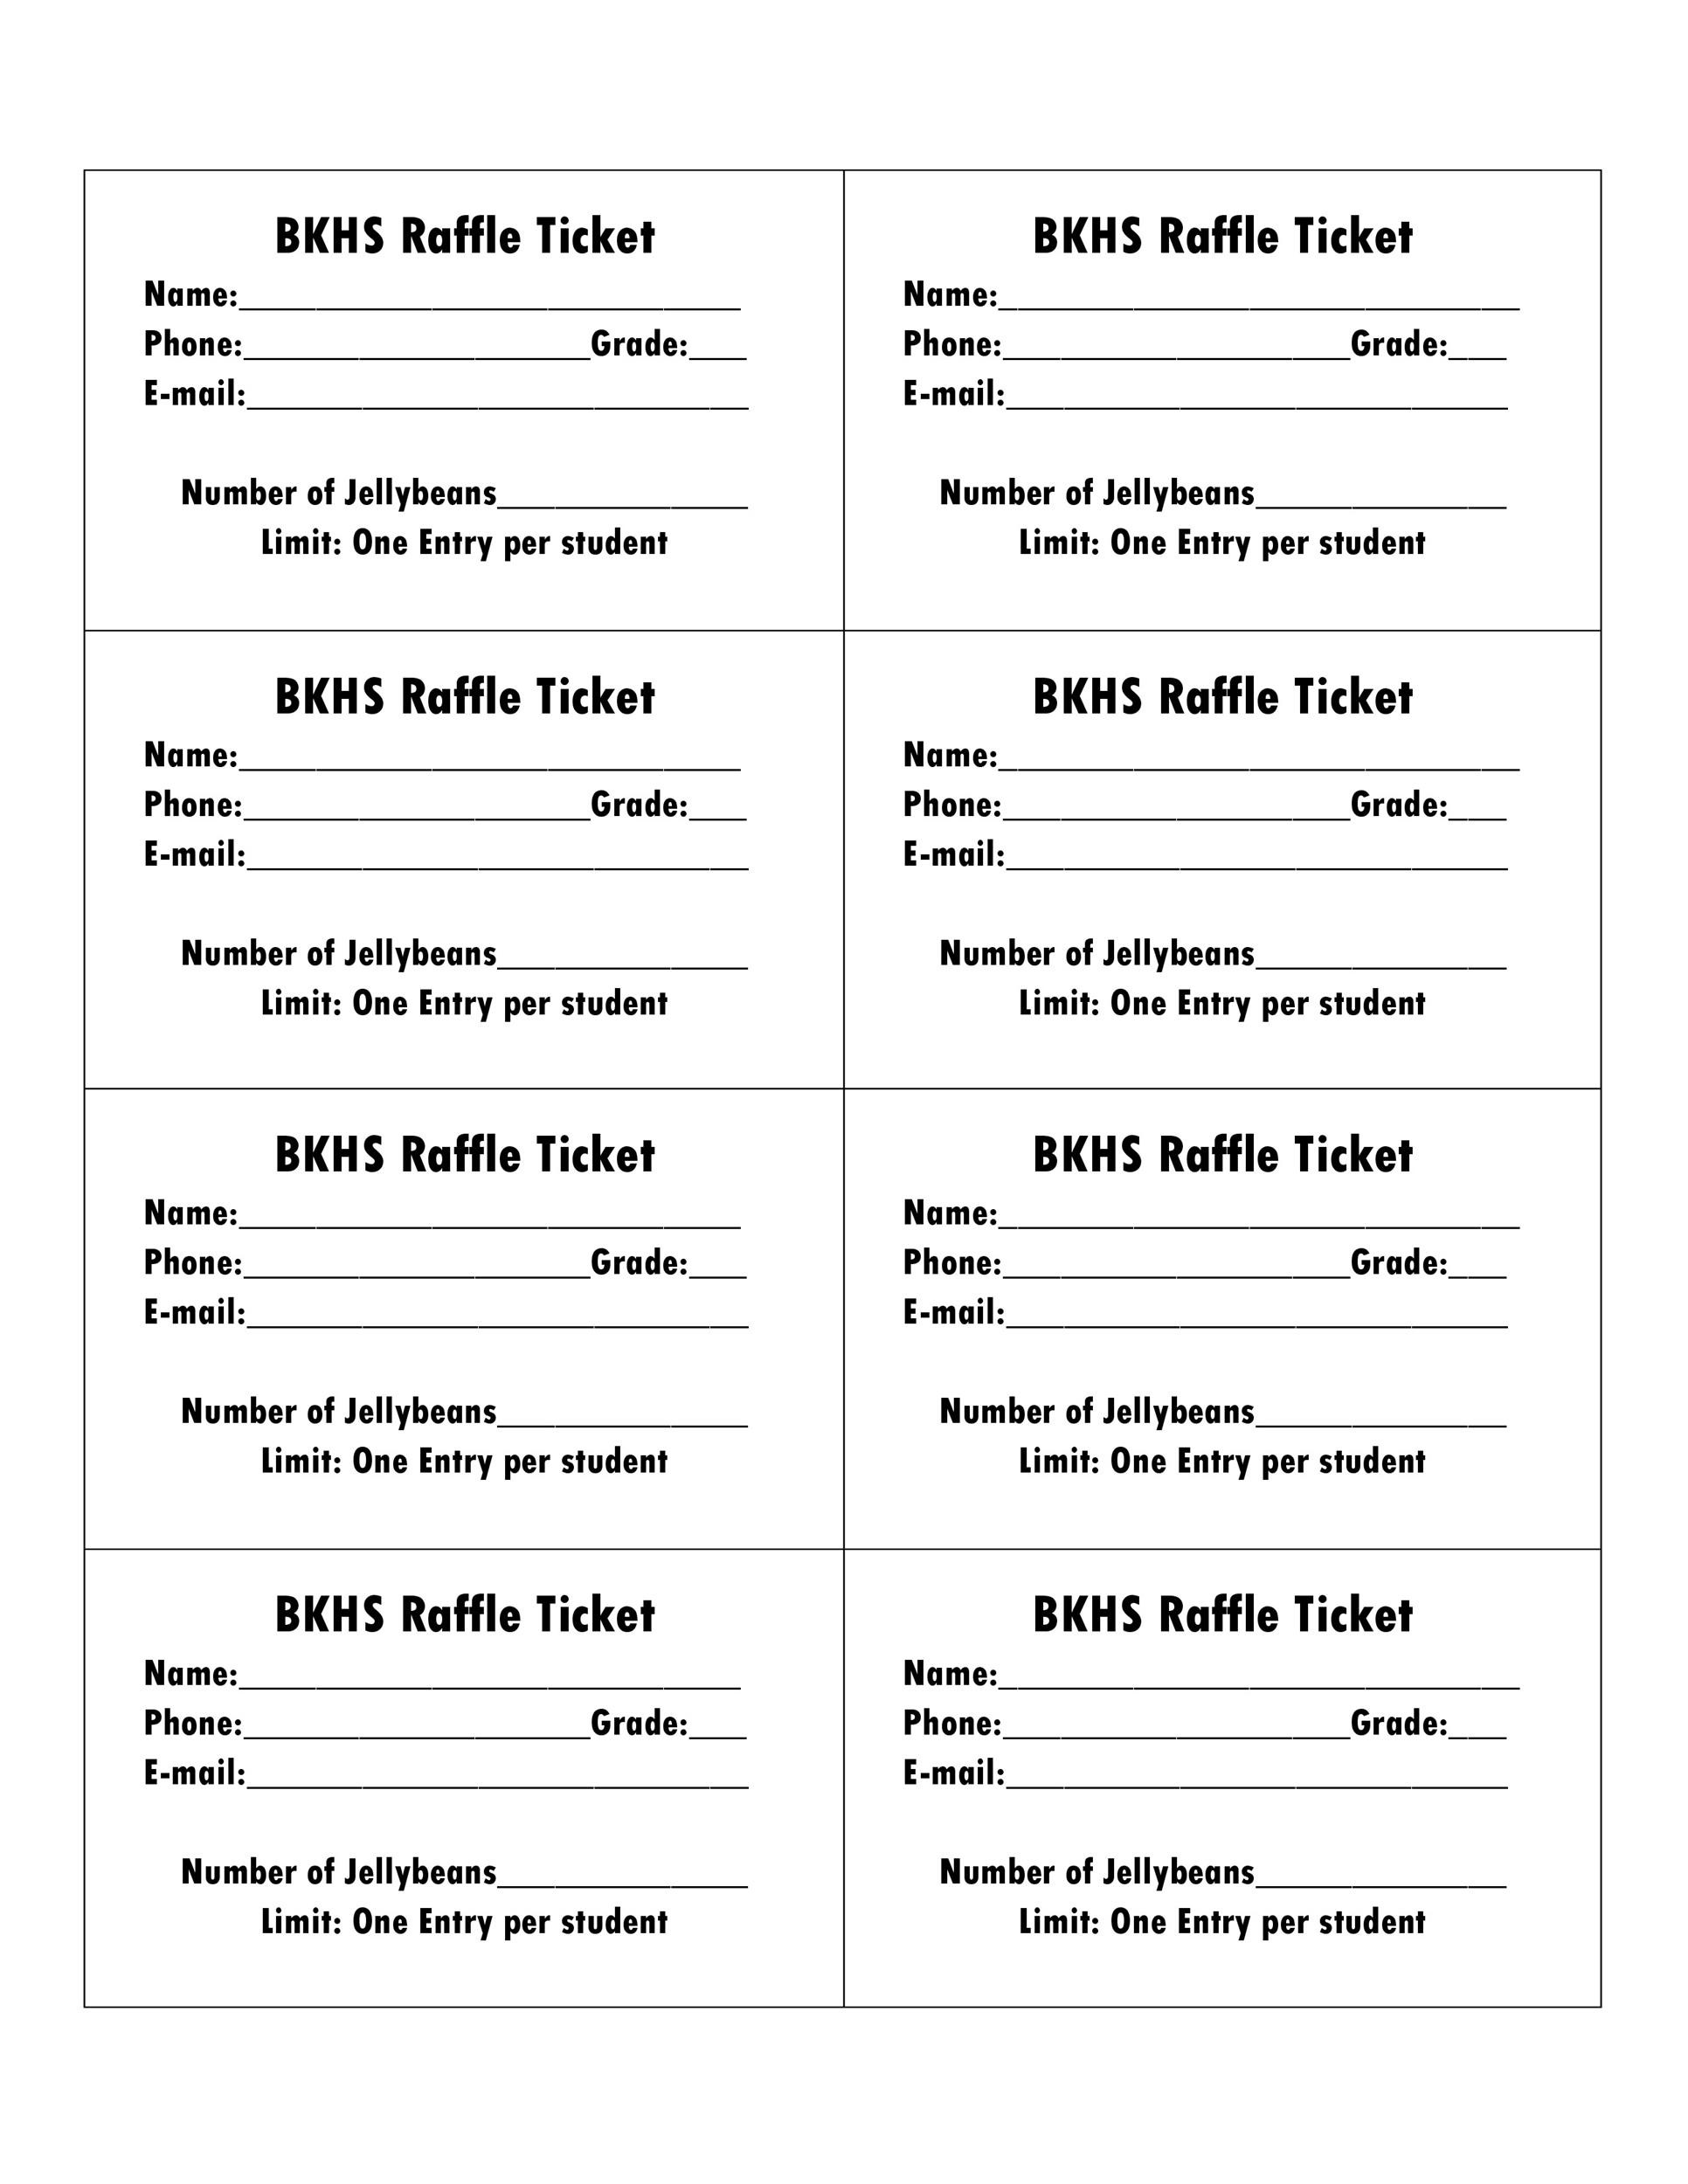 photo about Printable Raffle Tickets With Stubs named 40+ Absolutely free Editable Raffle Video Ticket Templates